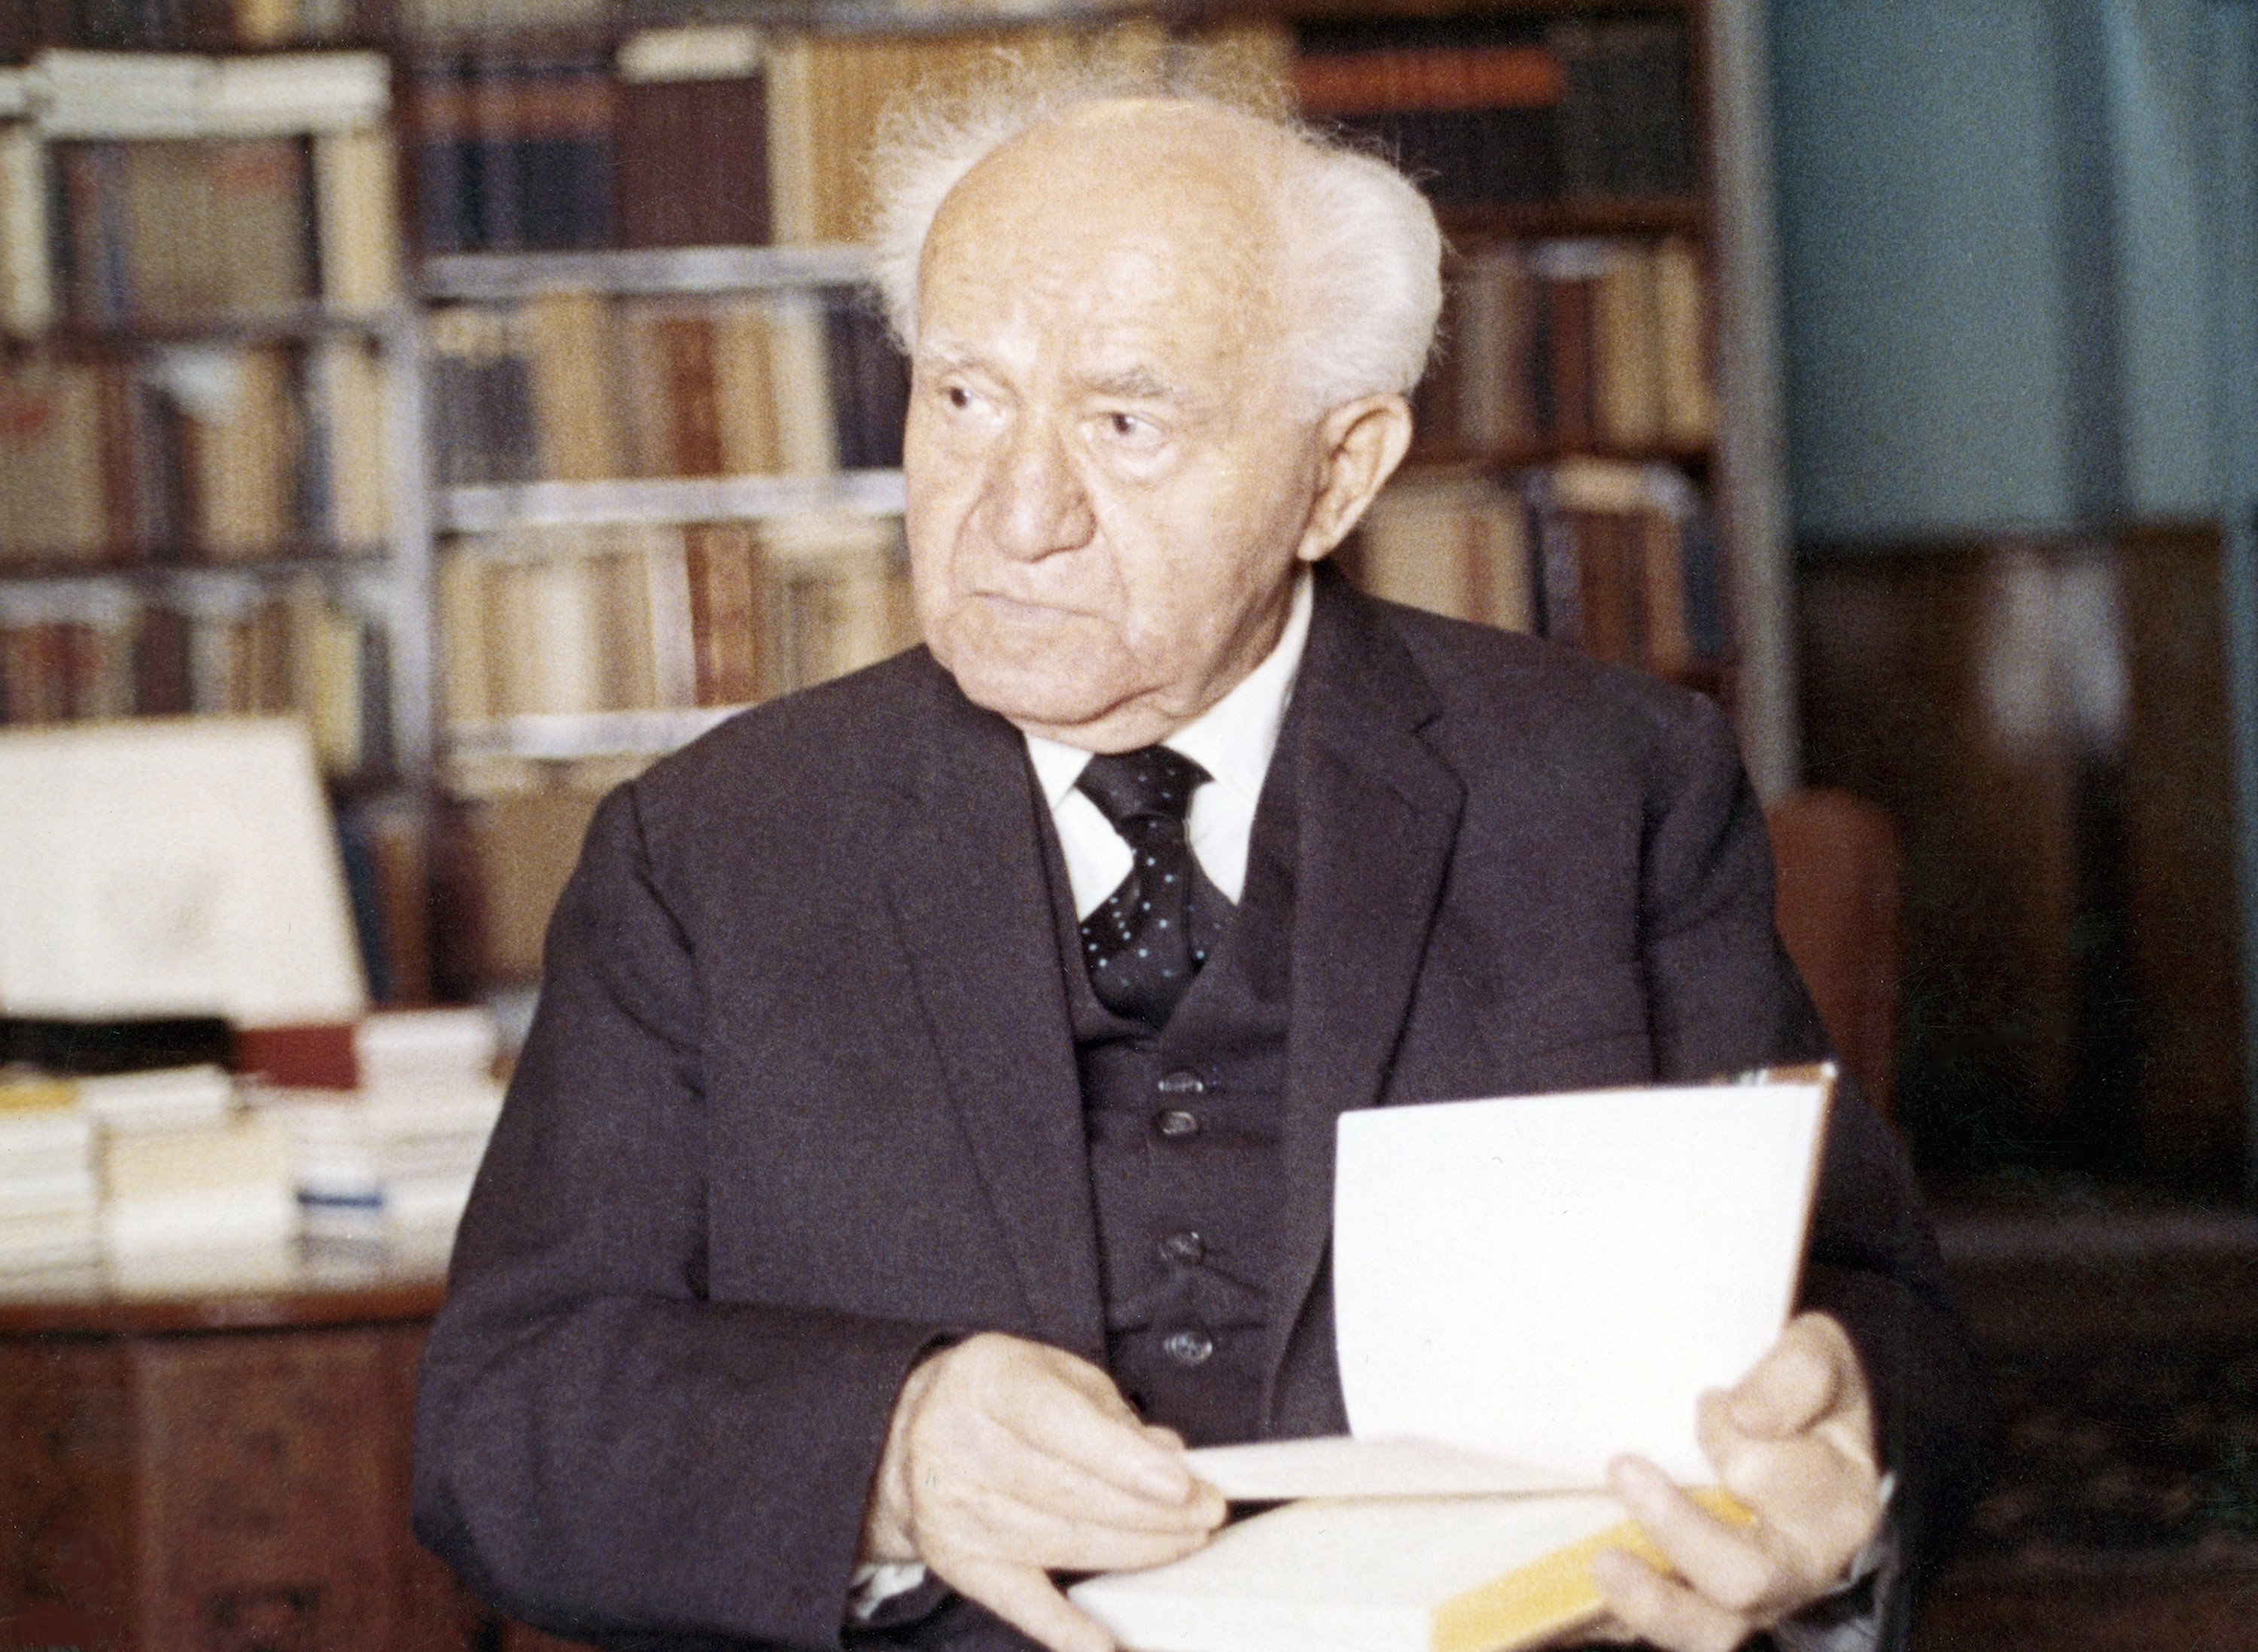 David Ben-Gurion, the founder and first prime minister of modern Israel, in his home library in Tel Aviv, Israel, on Oct. 16, 1970. (AP Photo)